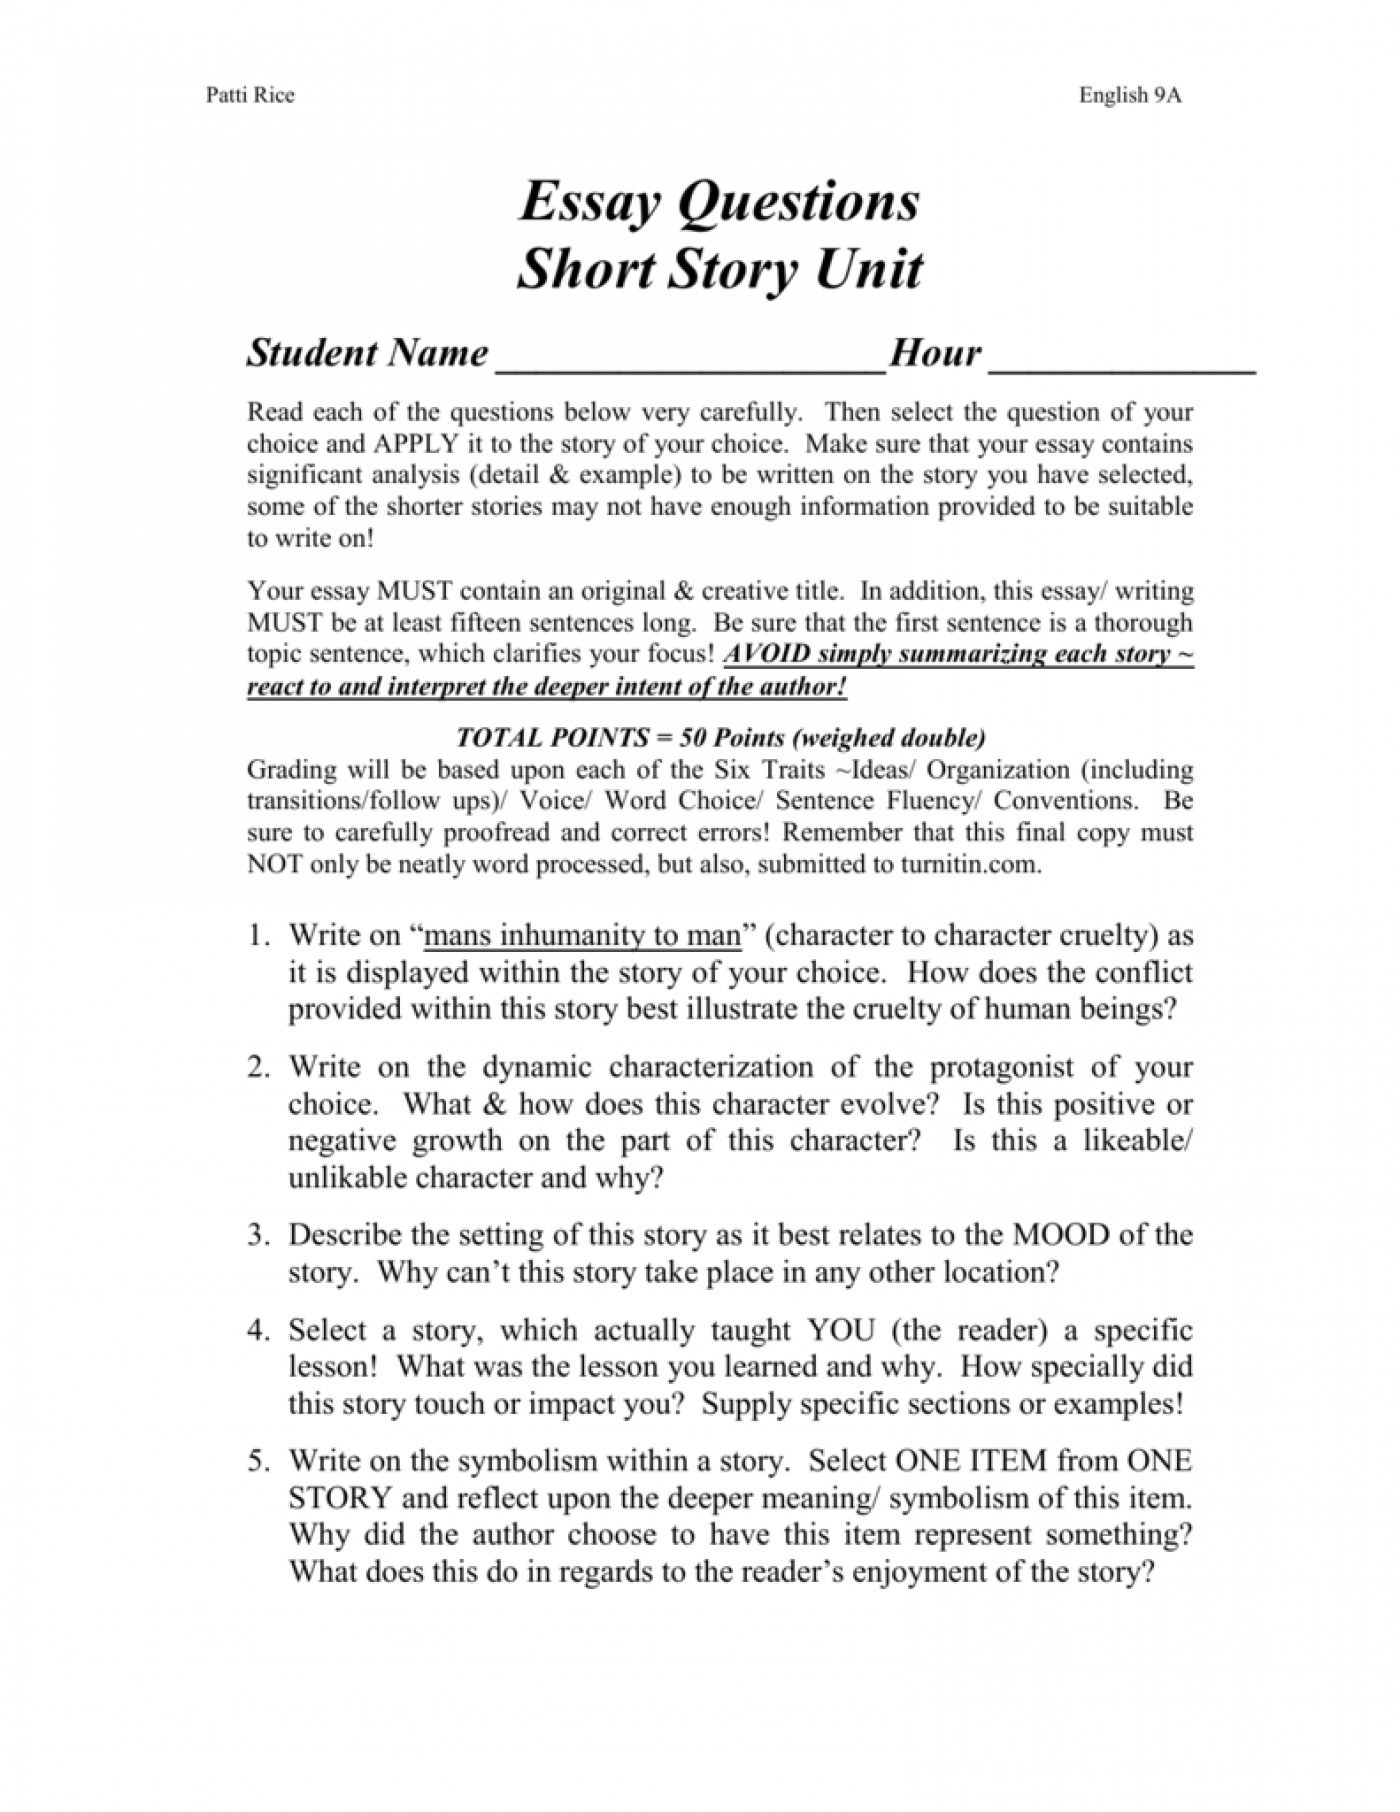 006 Short Story Essay Examples Example 008001643 1 Unforgettable Review Comparison Compare And Contrast 1400